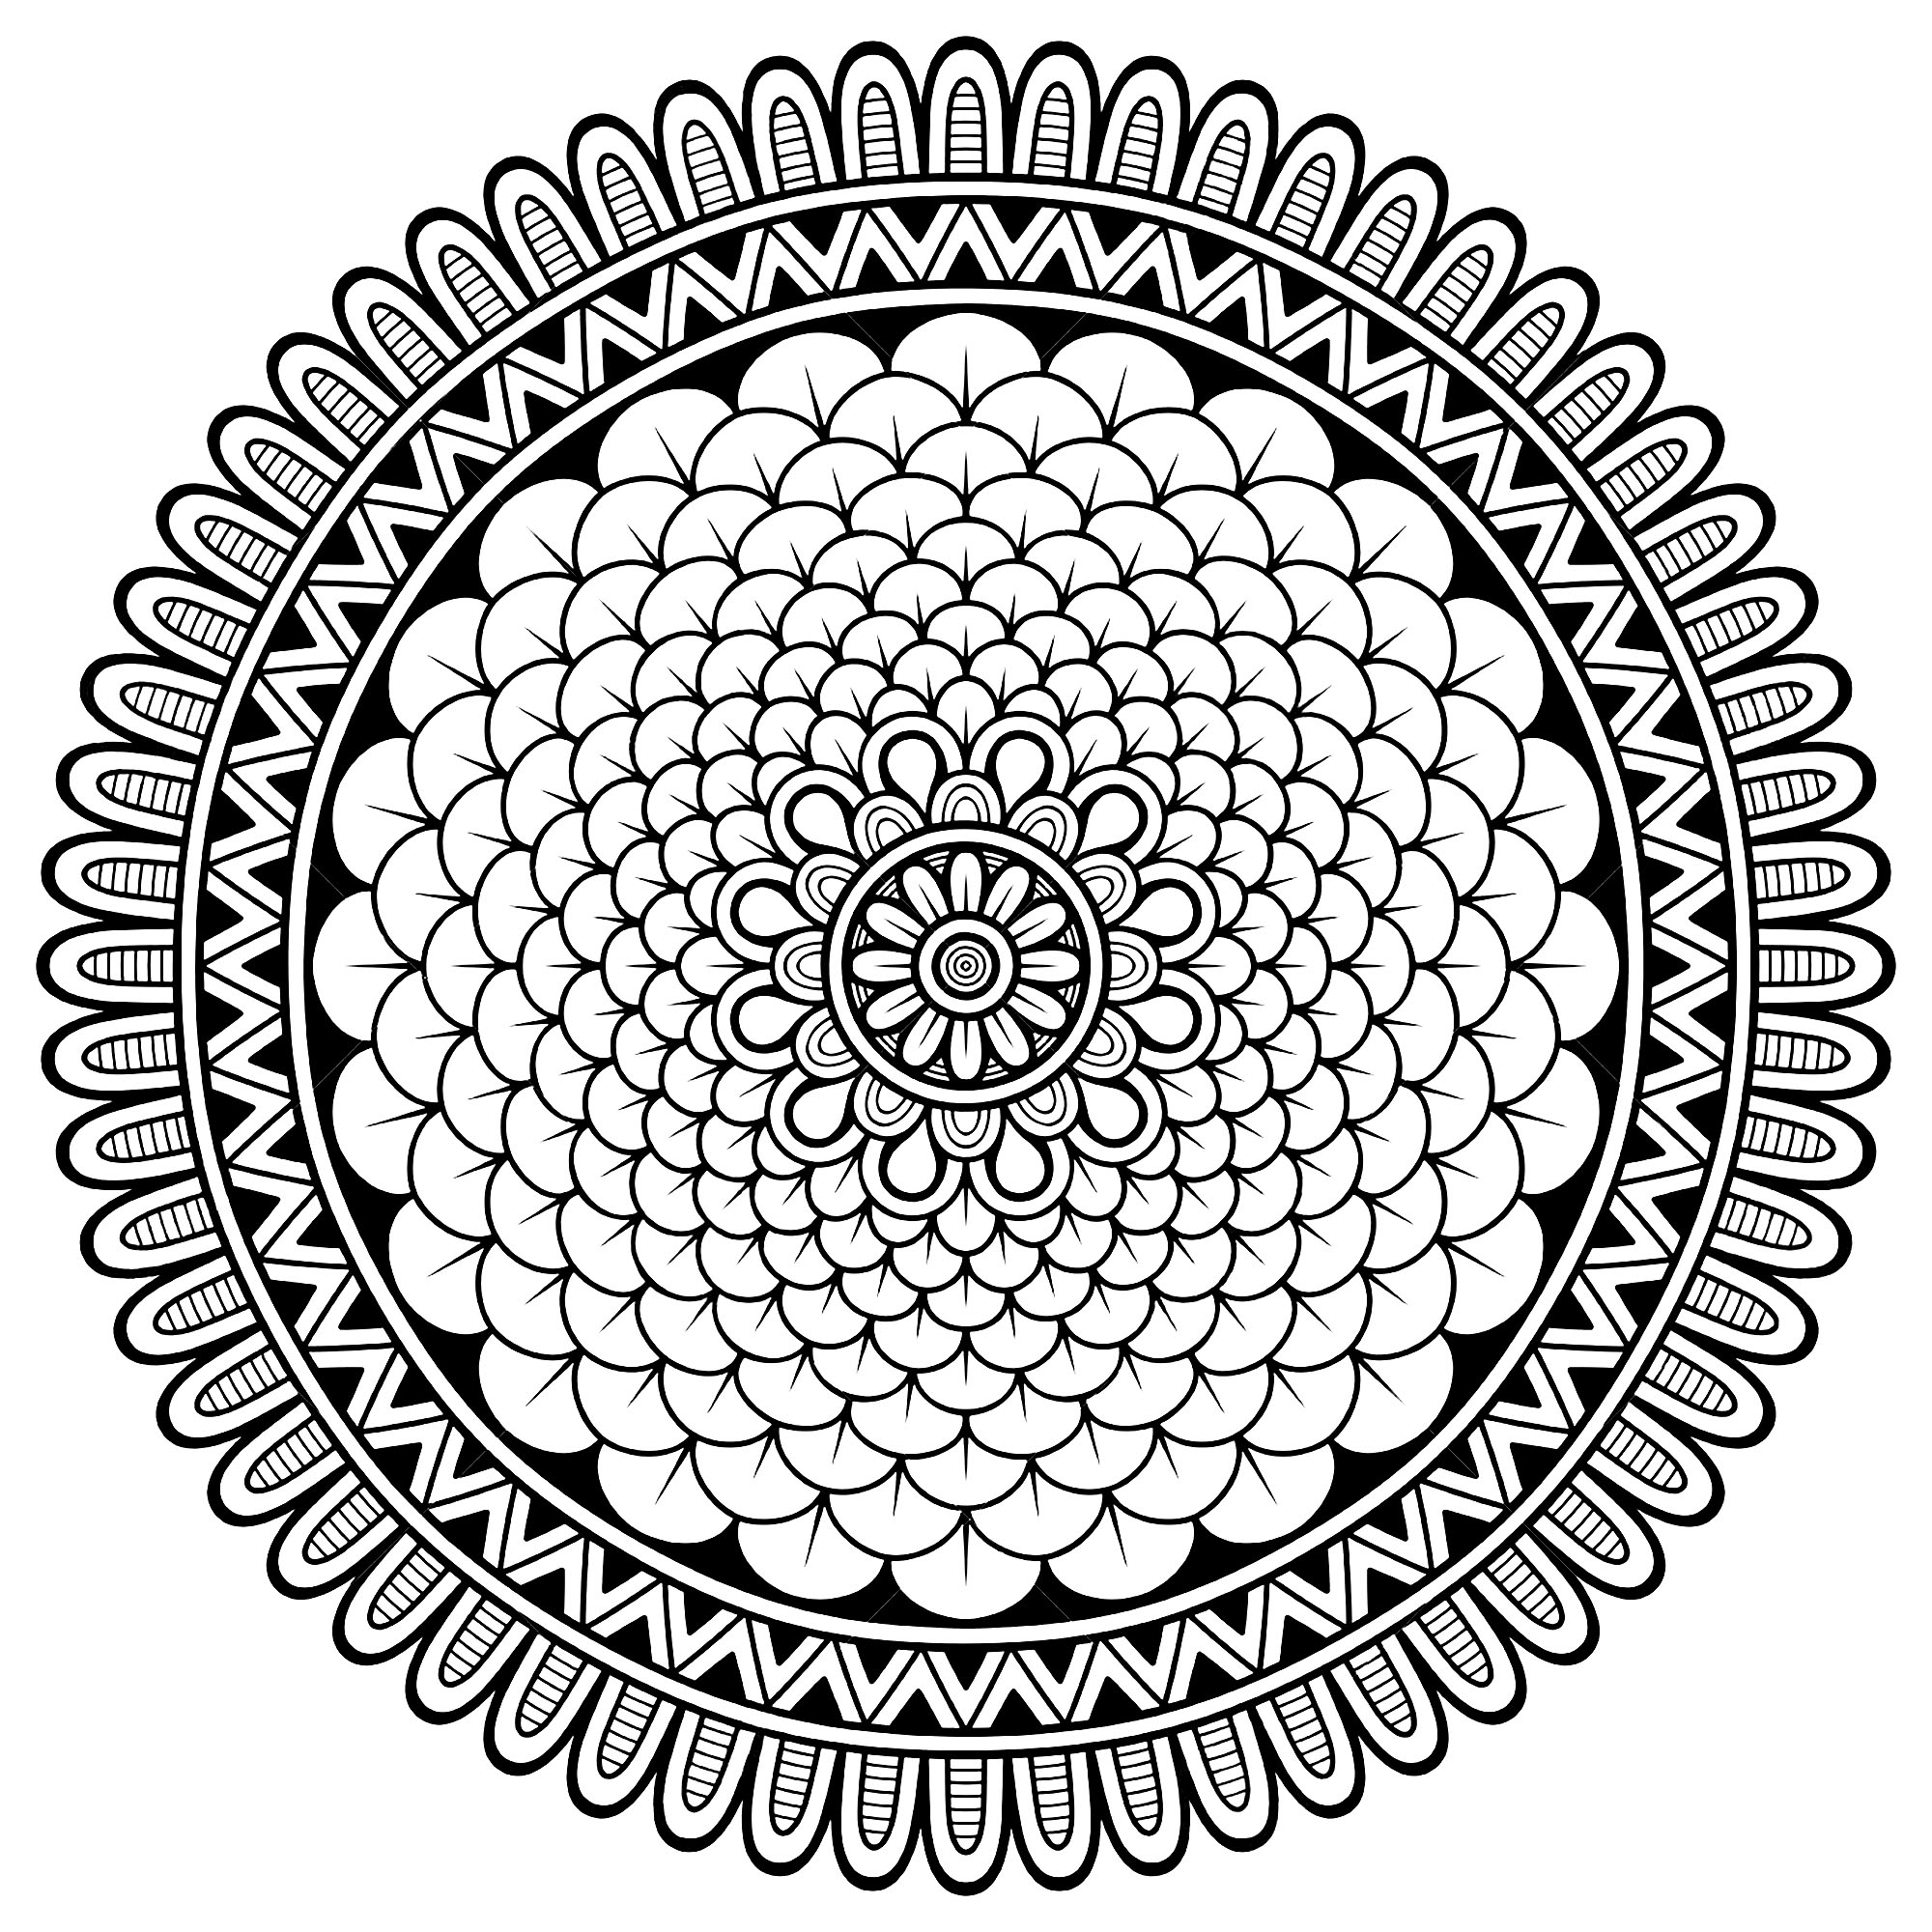 A Mandala guaranteed 100% Relaxation ... coloring a mandala helps you connect with your inner self, bring out your most creative side, and lower your heart rate and blood pressure.